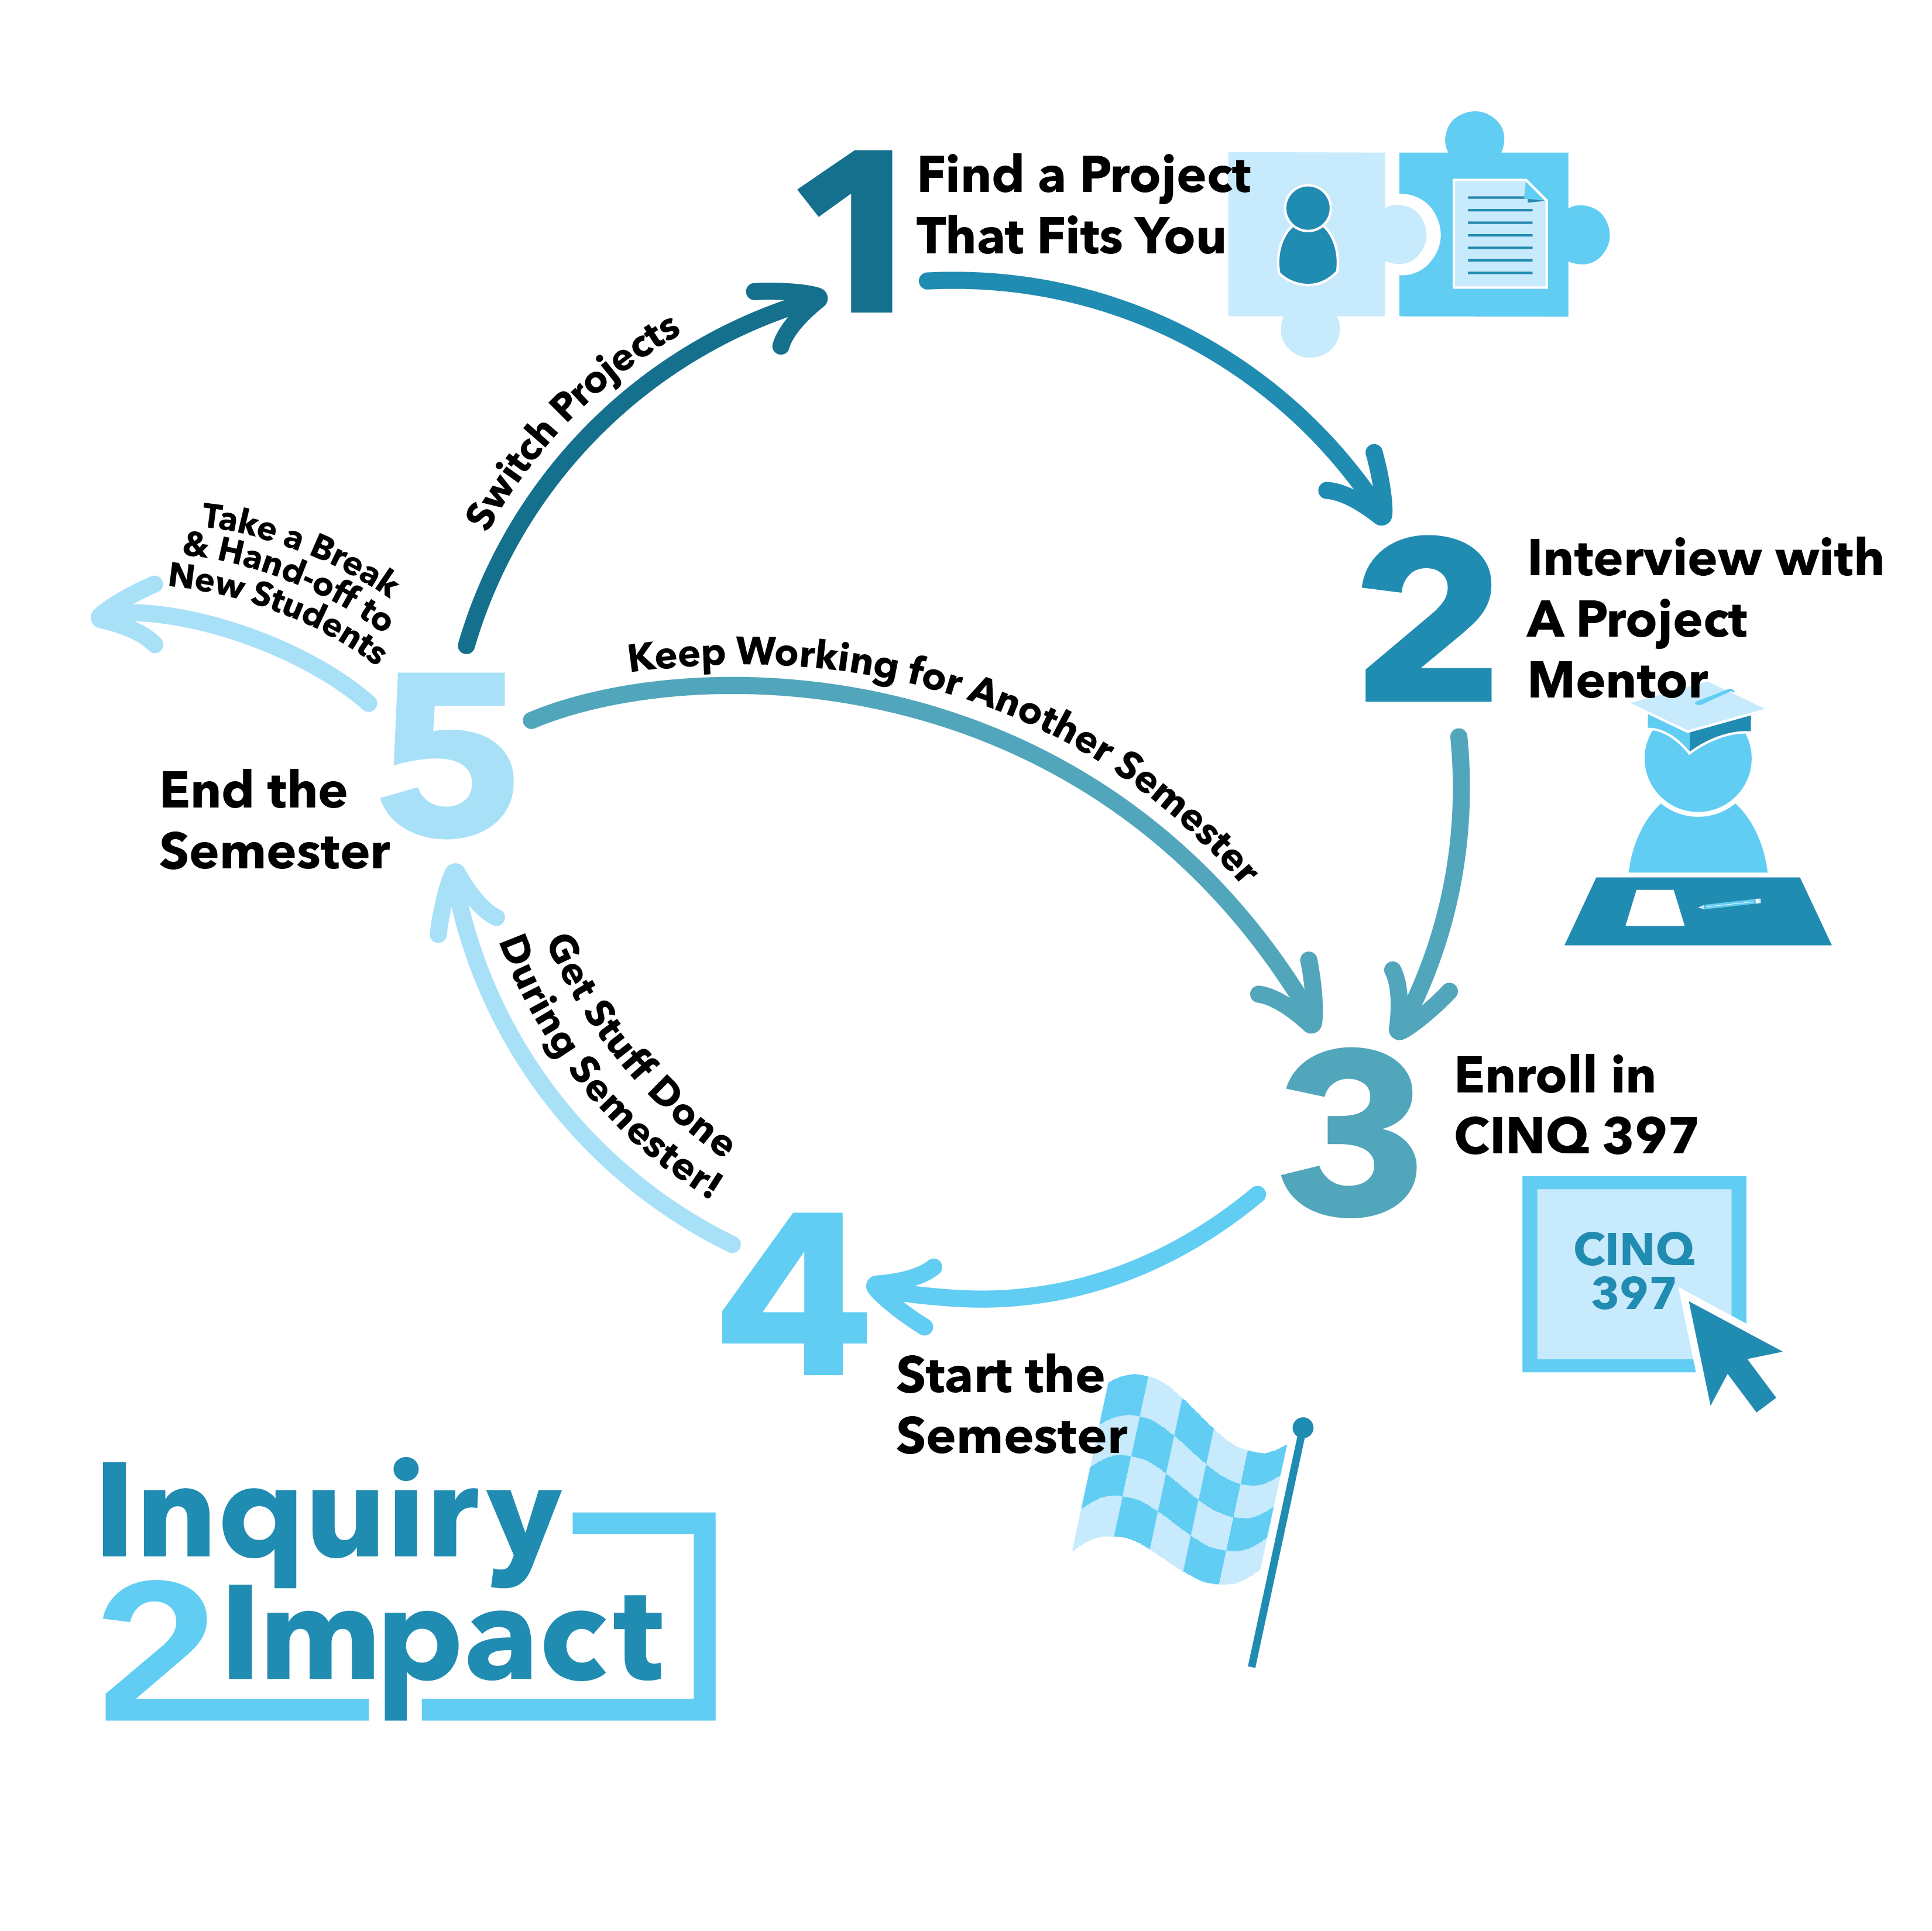 project impact diagram organisation of tall flat inquiry to projects creative mountaintop initiative spring 2019